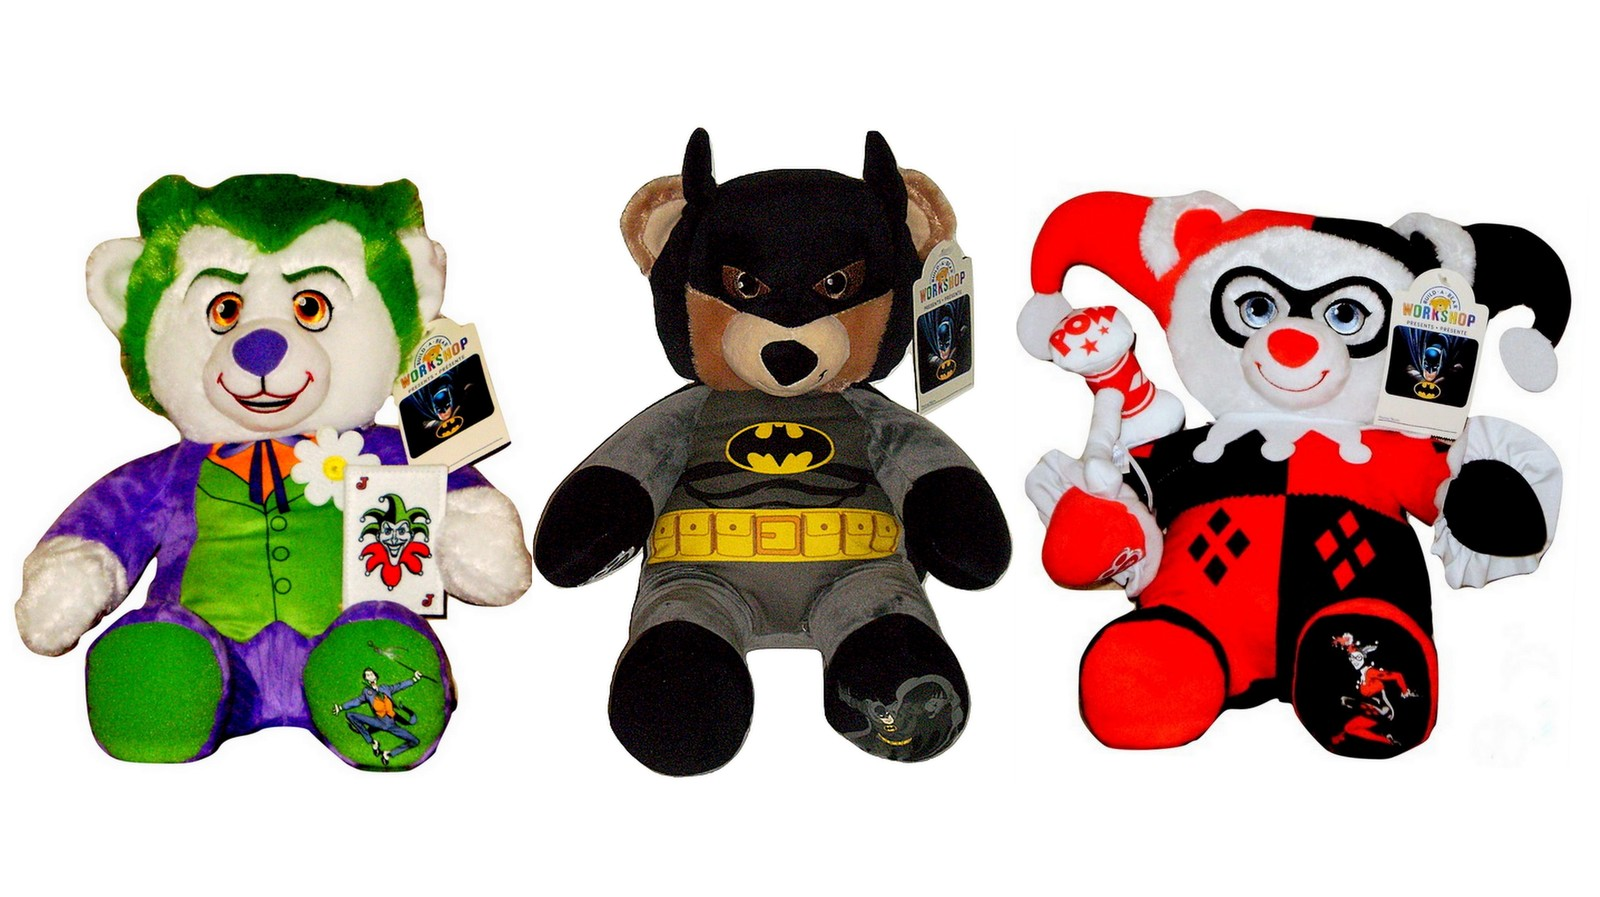 cb8b6ccc8bf Build a Bear Batman Harley Quinn The Joker and 19 similar items